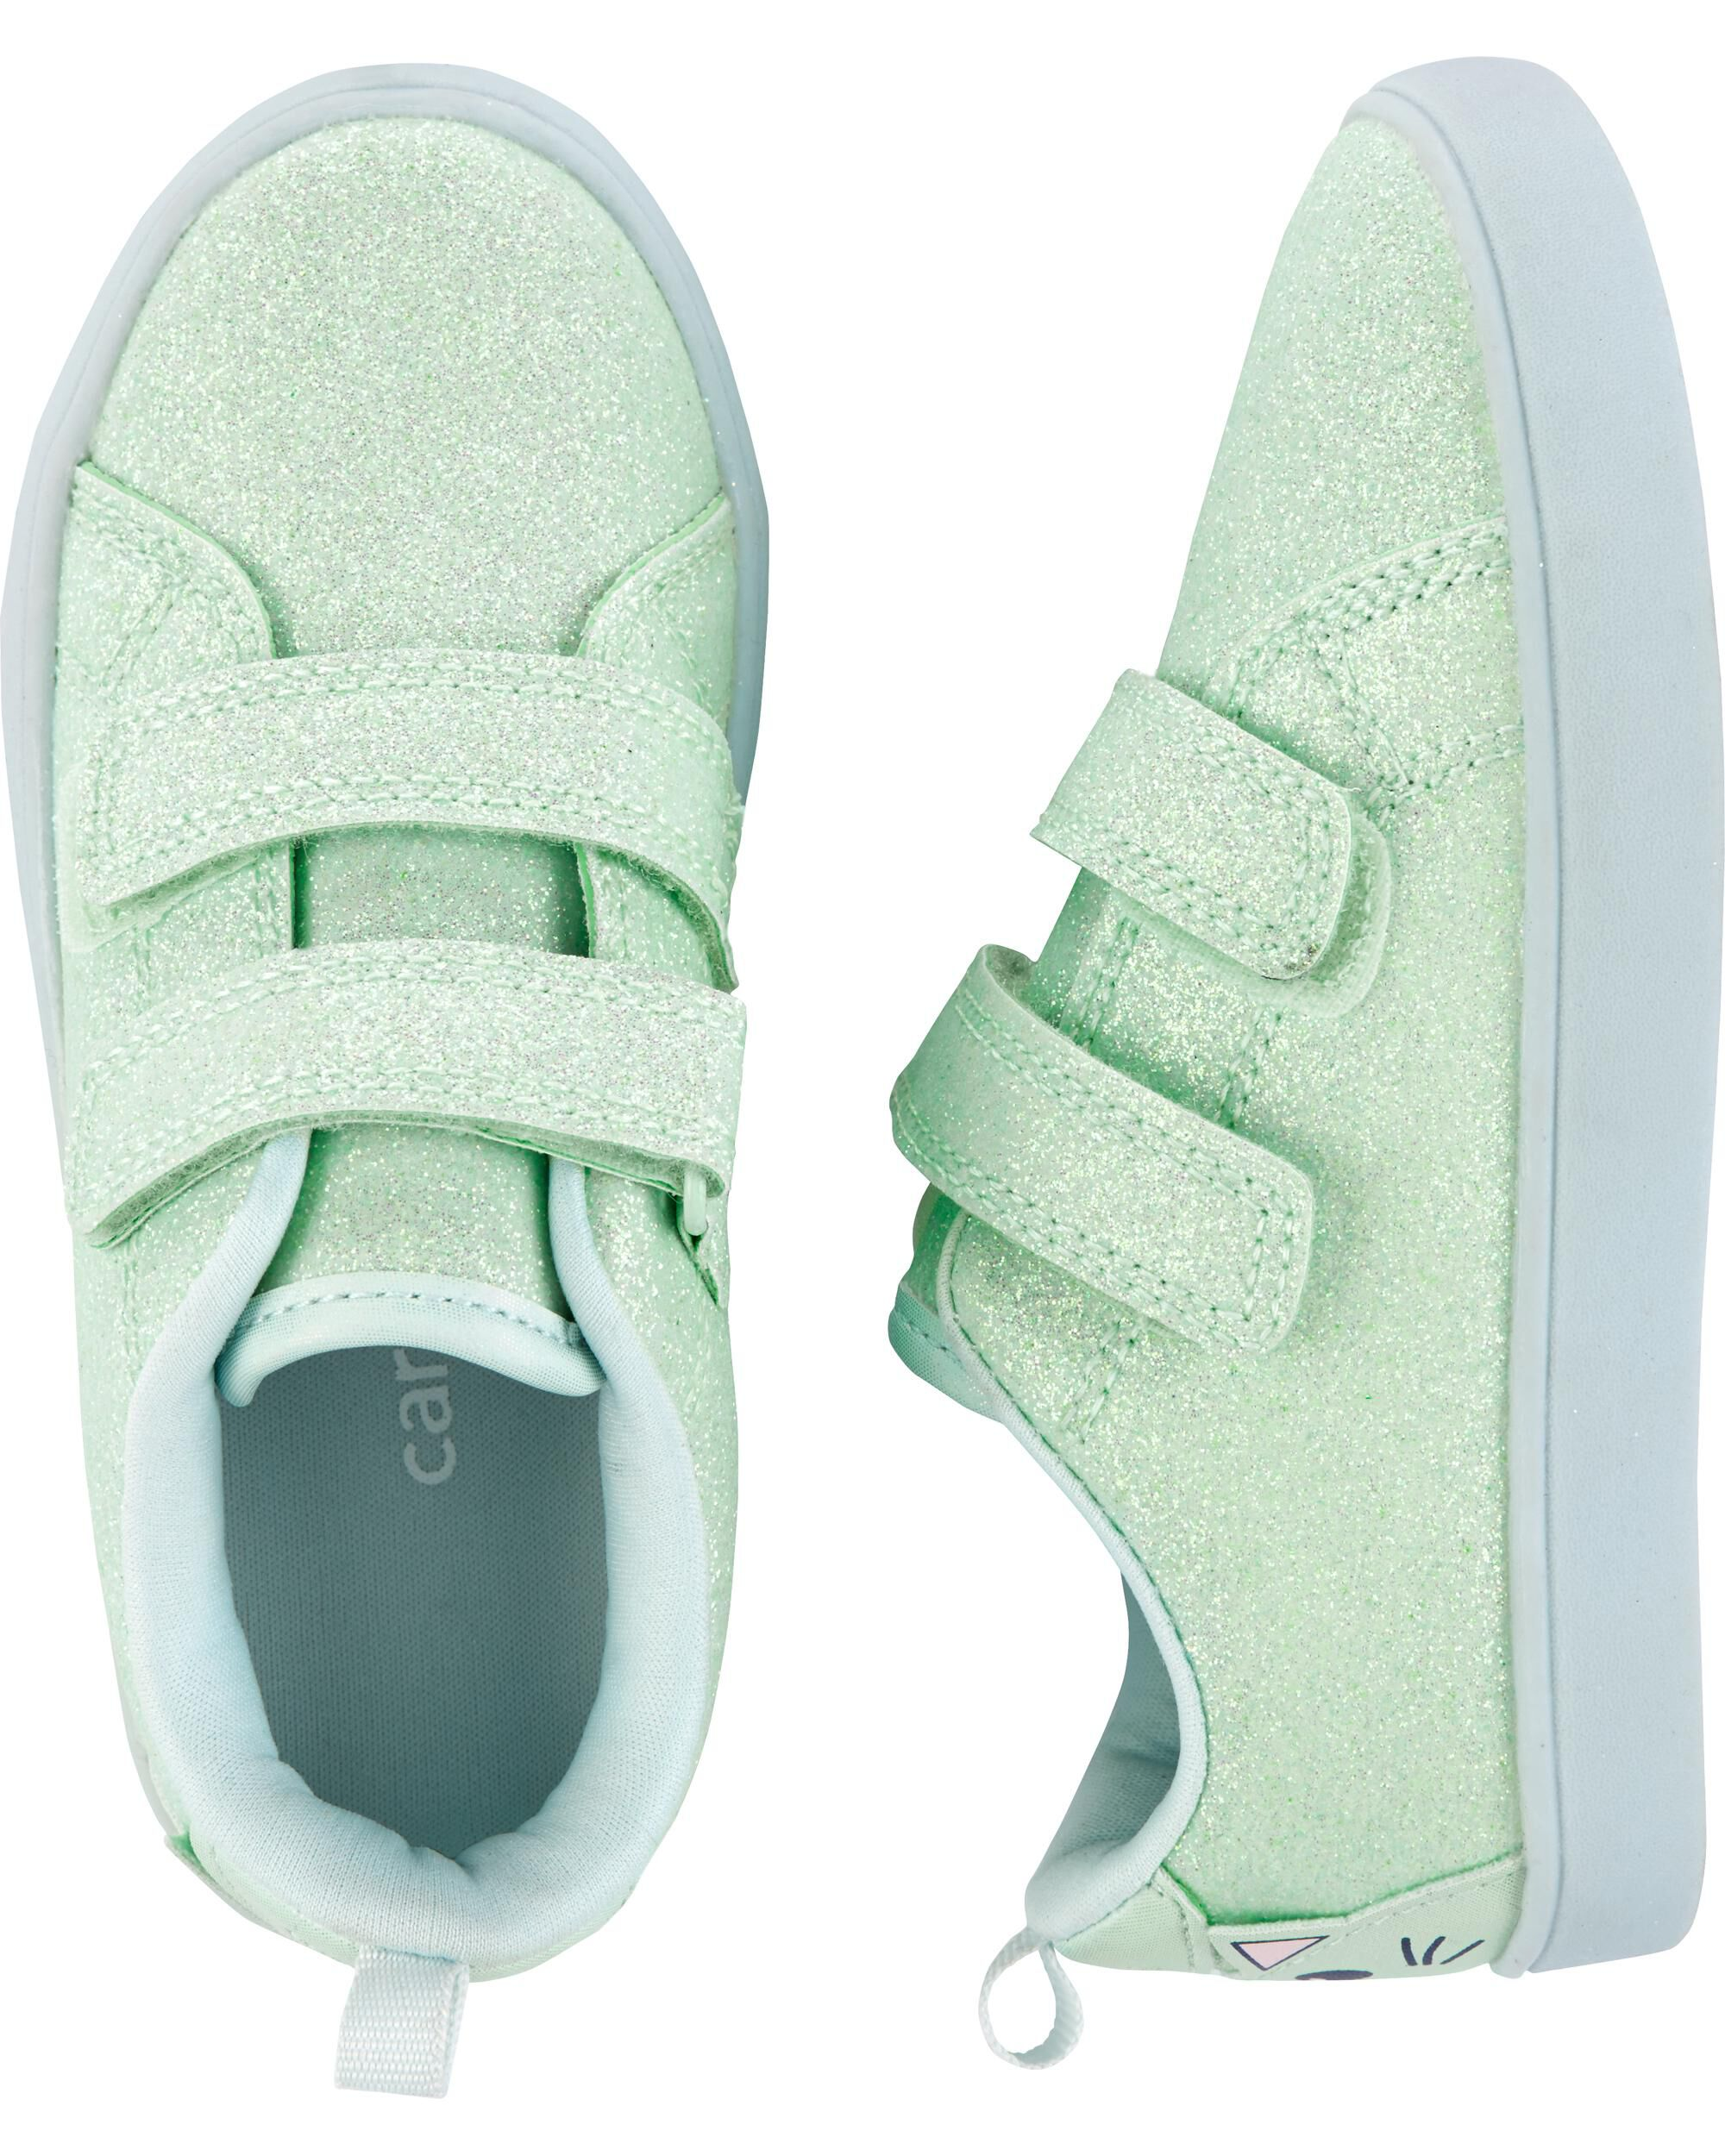 *CLEARANCE* Carter's Glitter Kitty Casual Sneakers